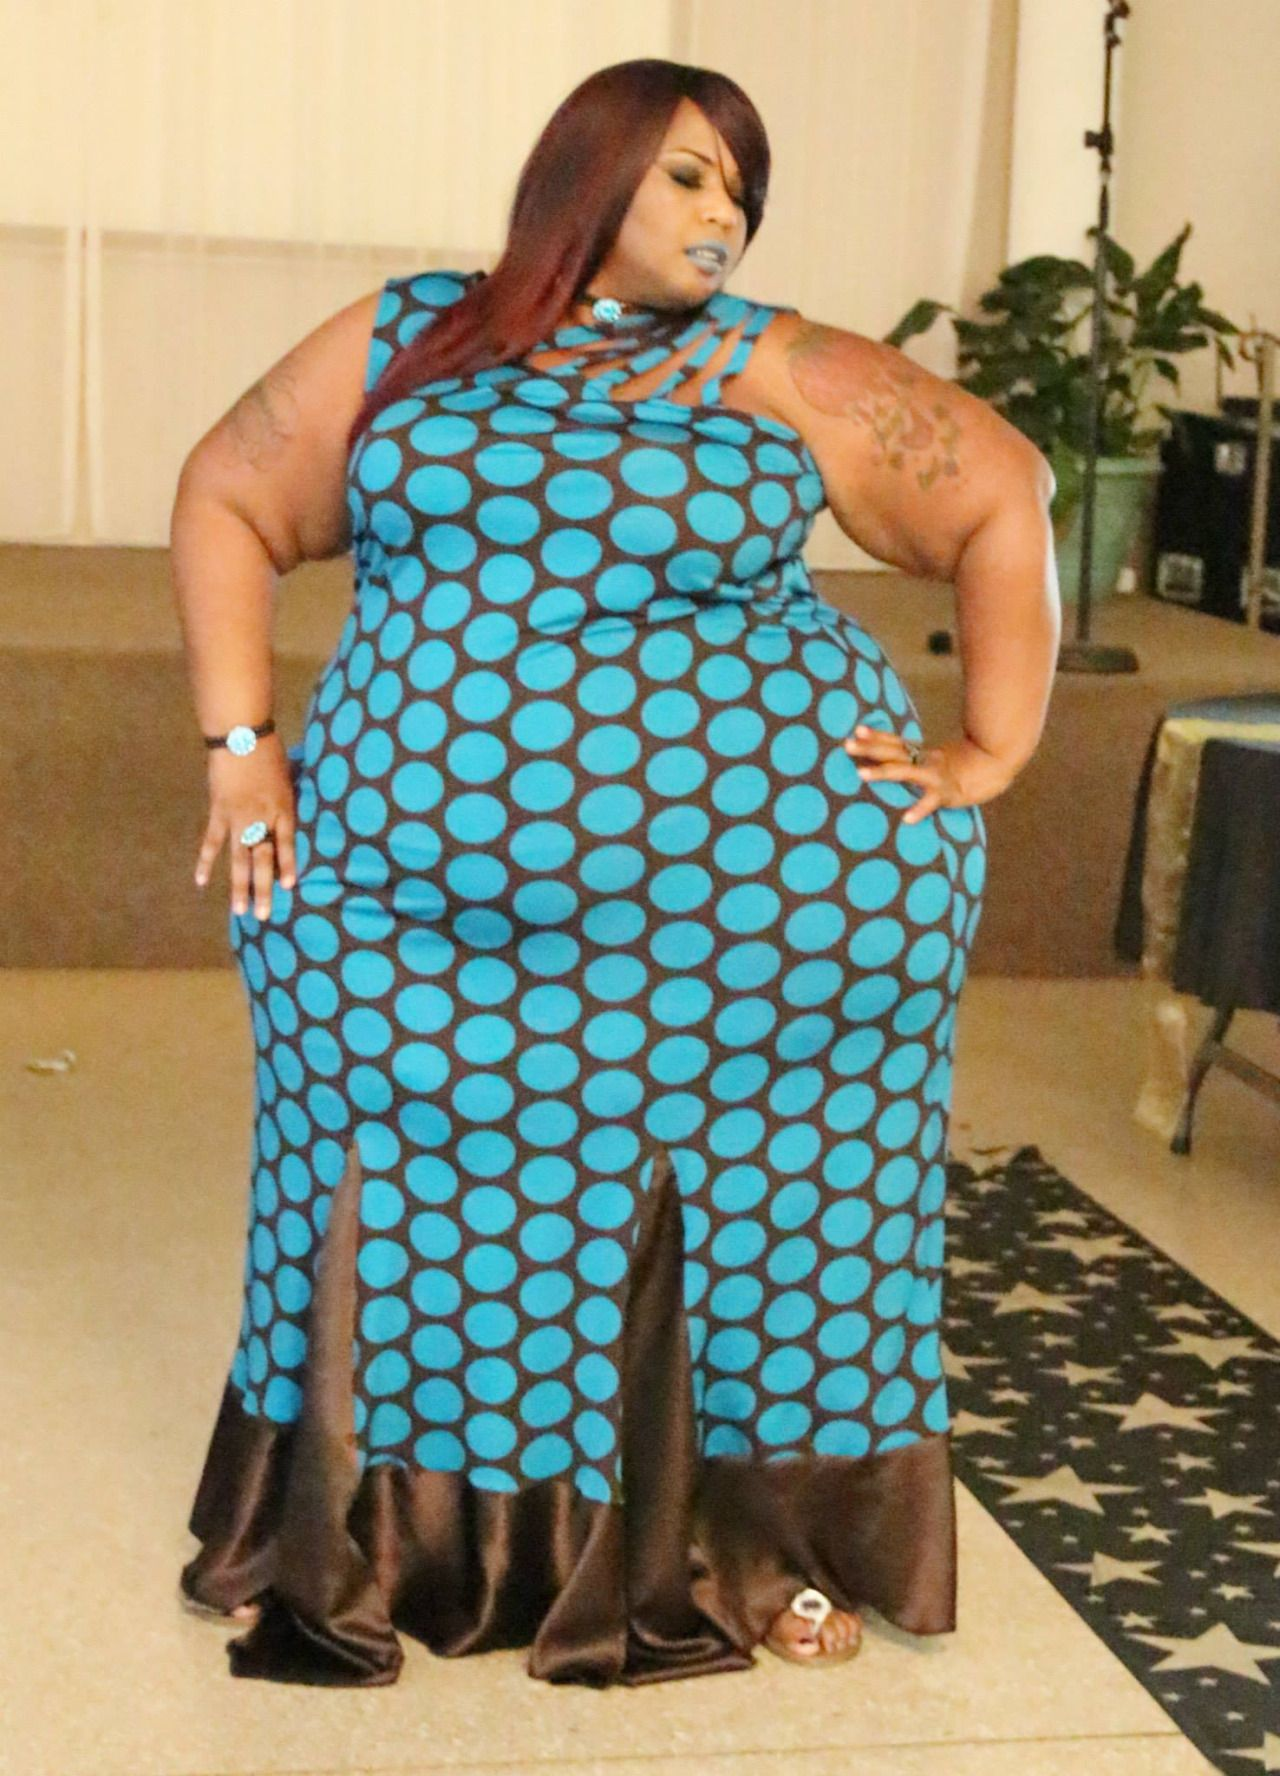 MajesticBBW Flash